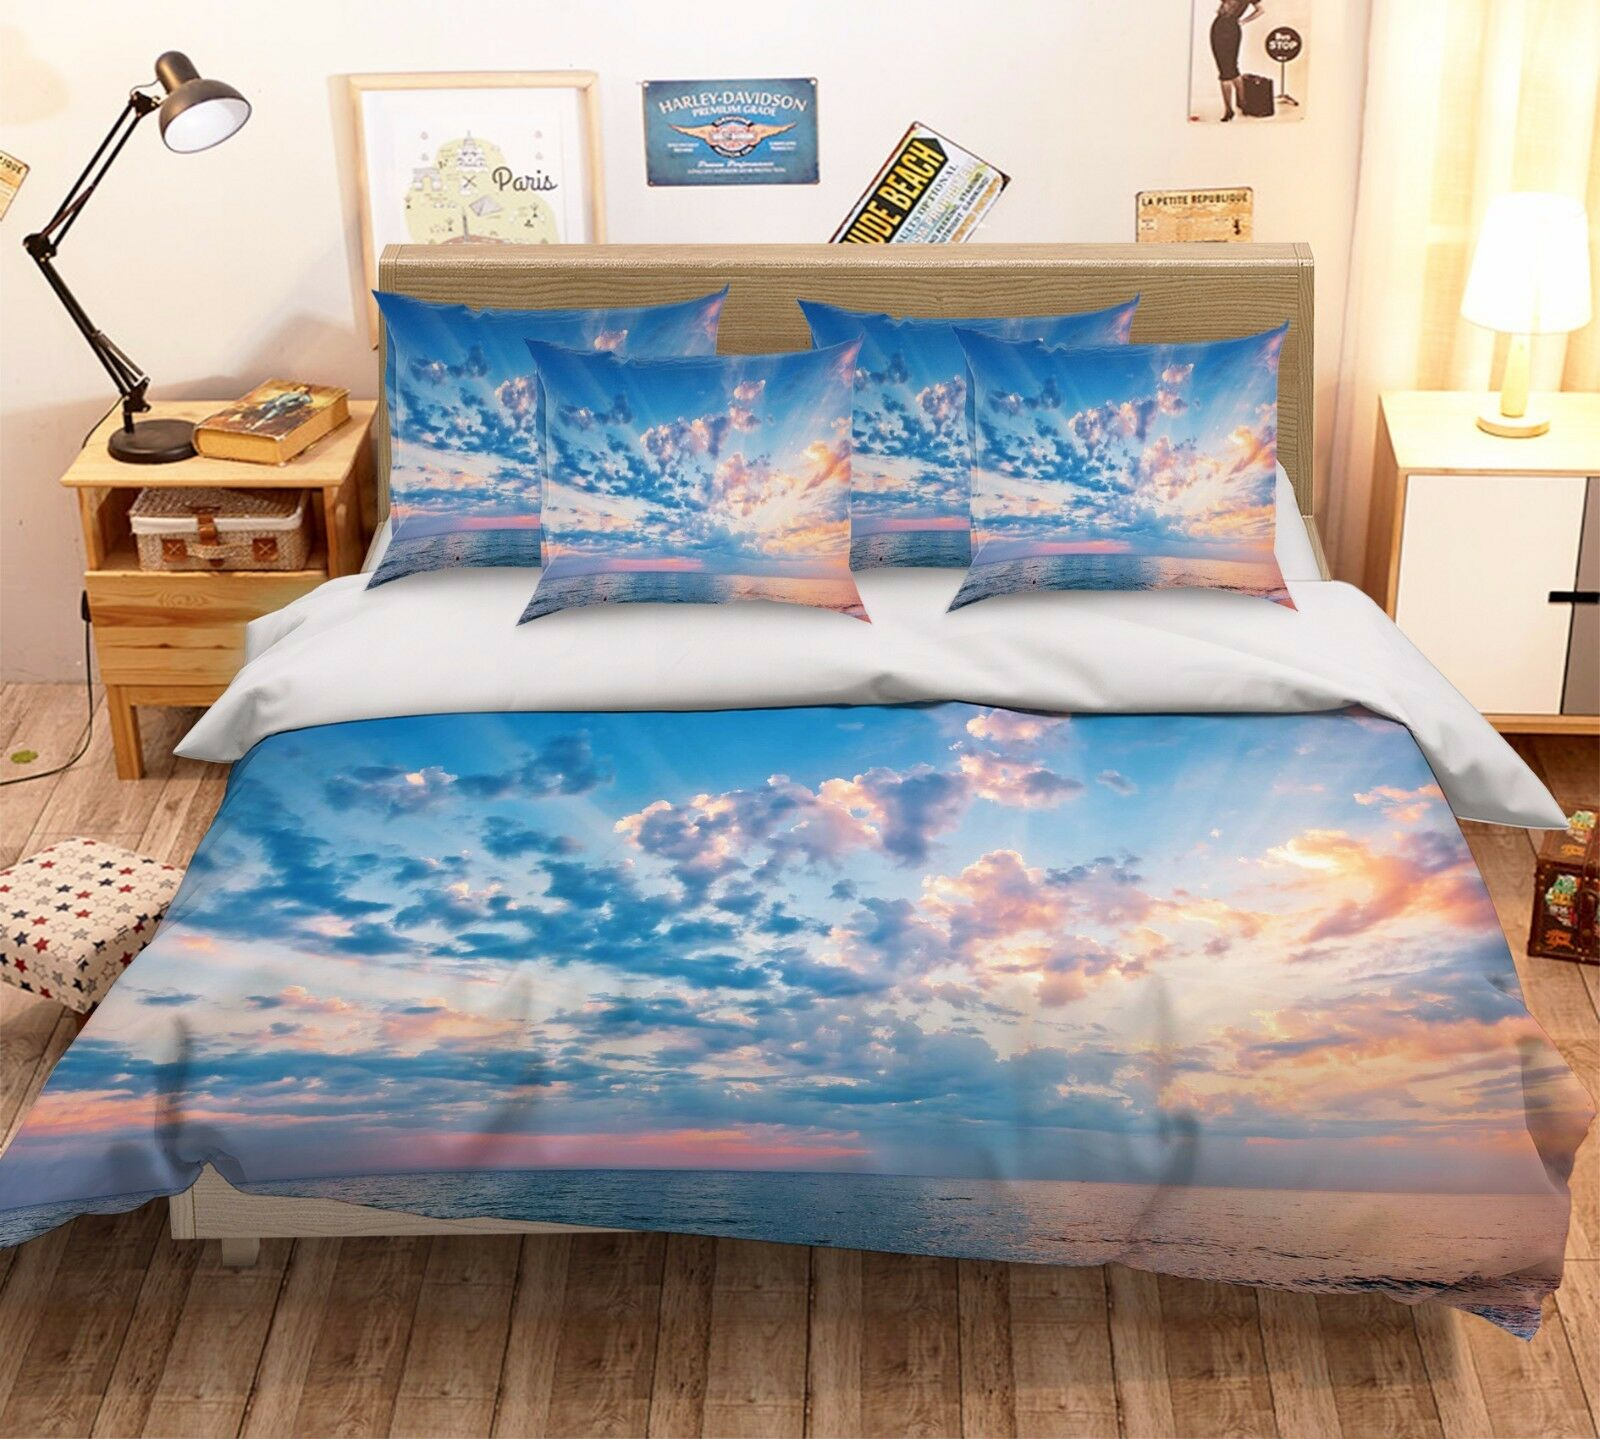 3D Vast Sea 384 Bed Pillowcases Quilt Duvet Cover Set Single Queen King Size AU